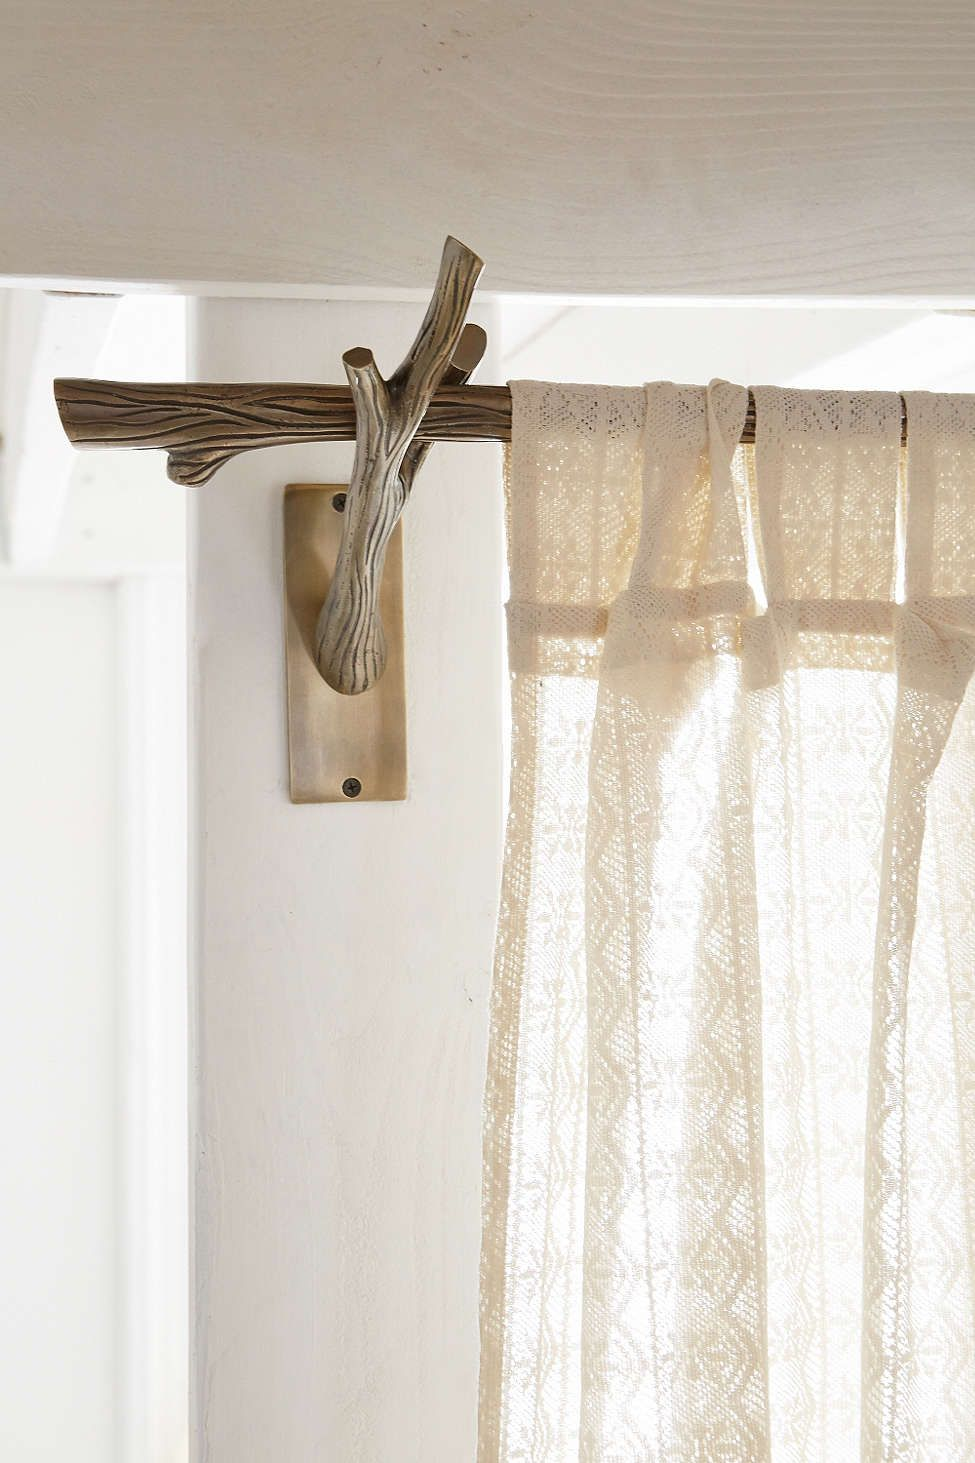 Bedroom Curtain Rod 4040 Locust Branch Curtain Rod Urban Outfitters Curtain Rods